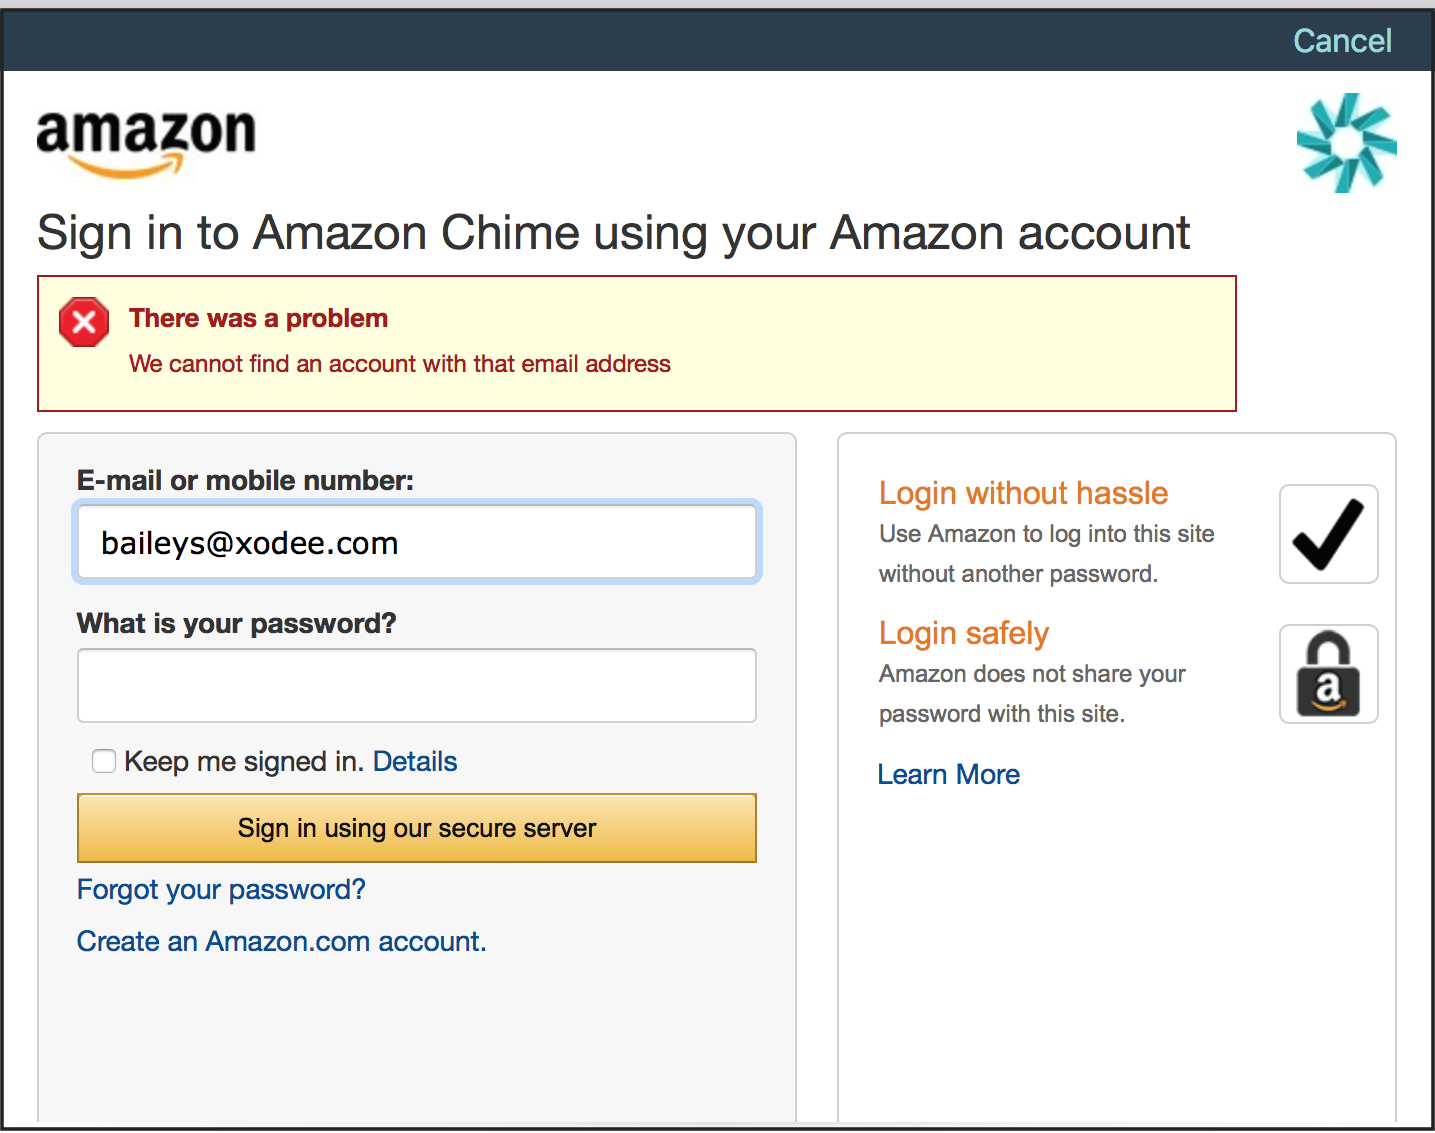 amazon store card make a payment photo - 1